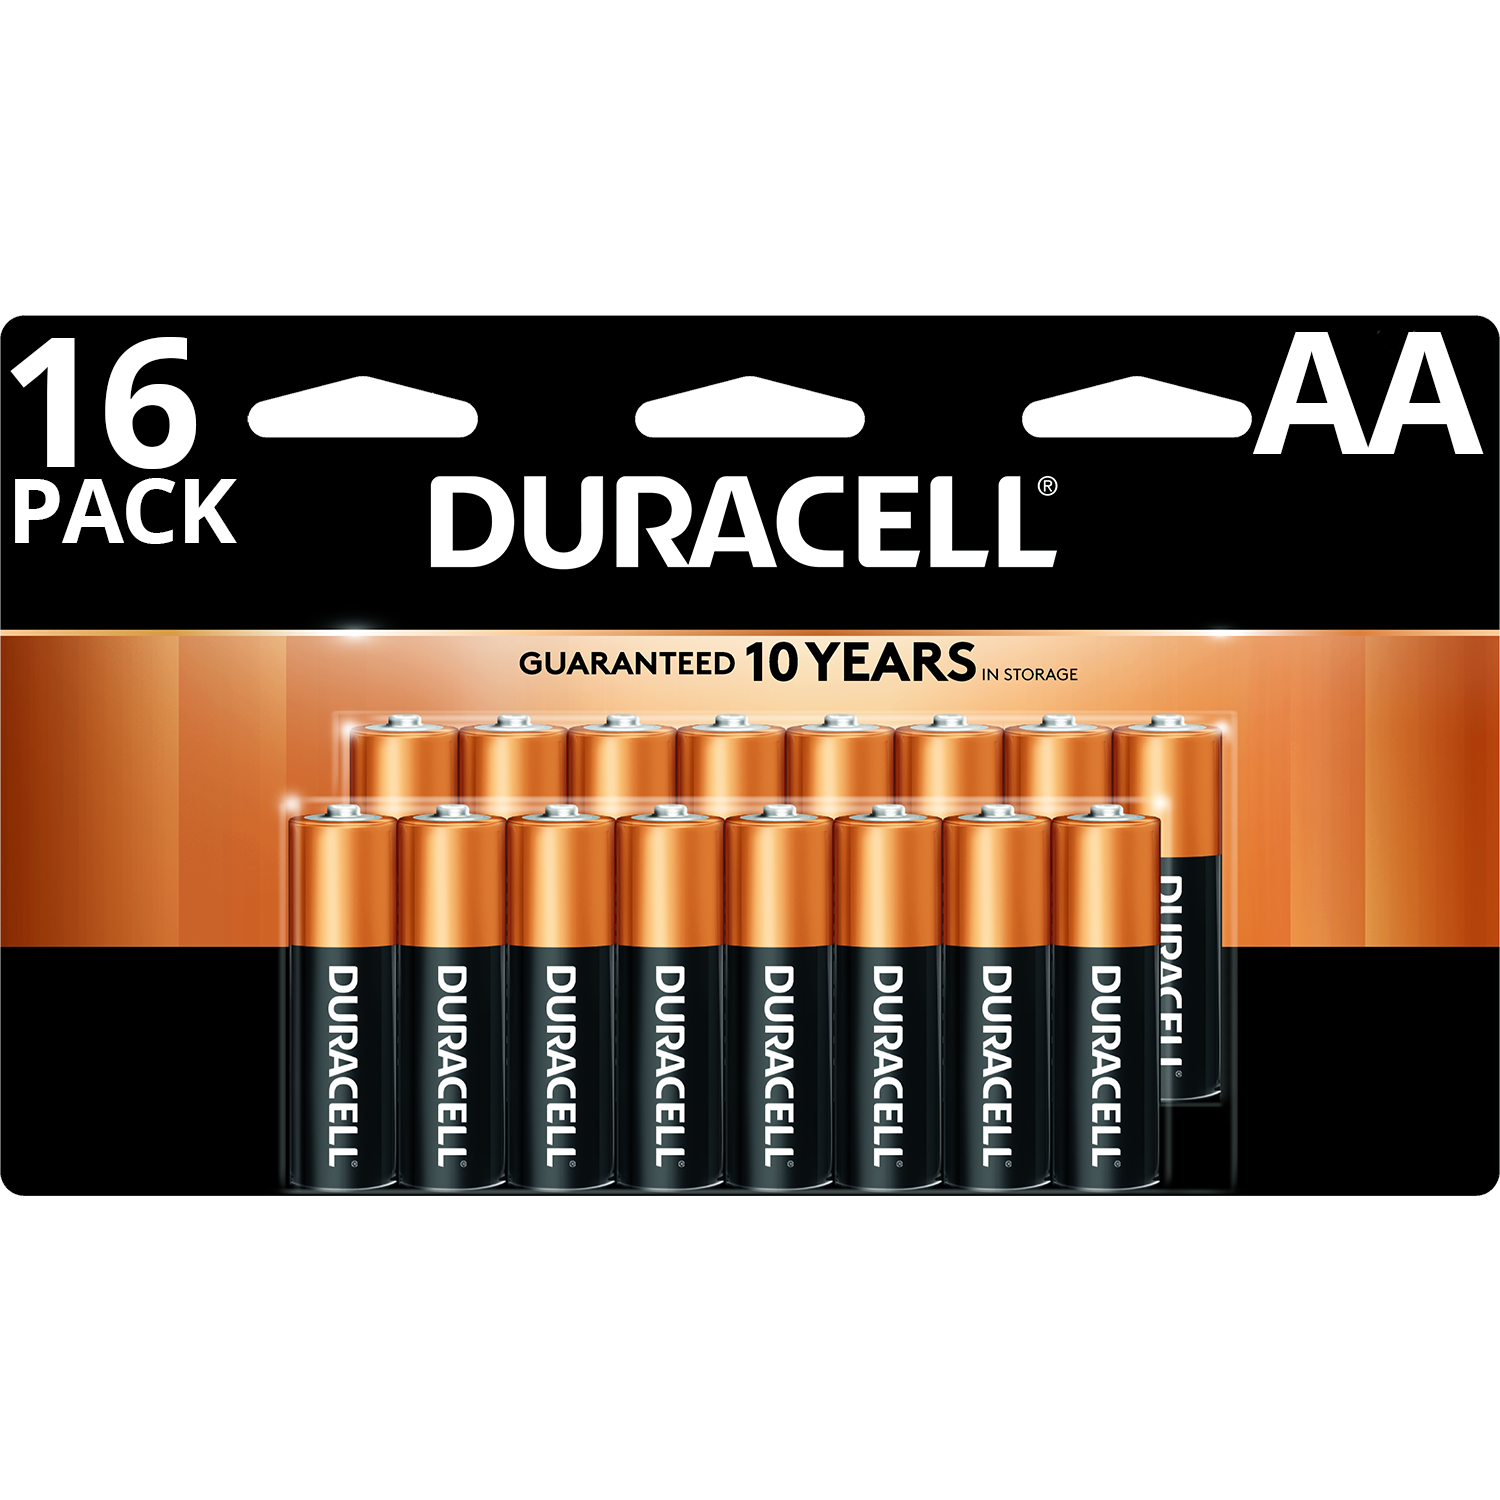 Duracell Coppertop AA Battery, Long Lasting Double A Batteries, 16 Pack